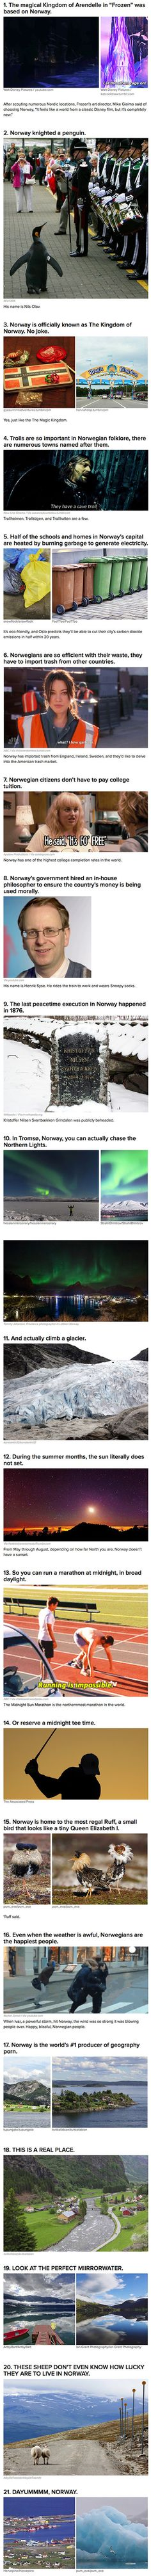 We have rounded up some interesting reasons why geeks should consider moving to Norway.